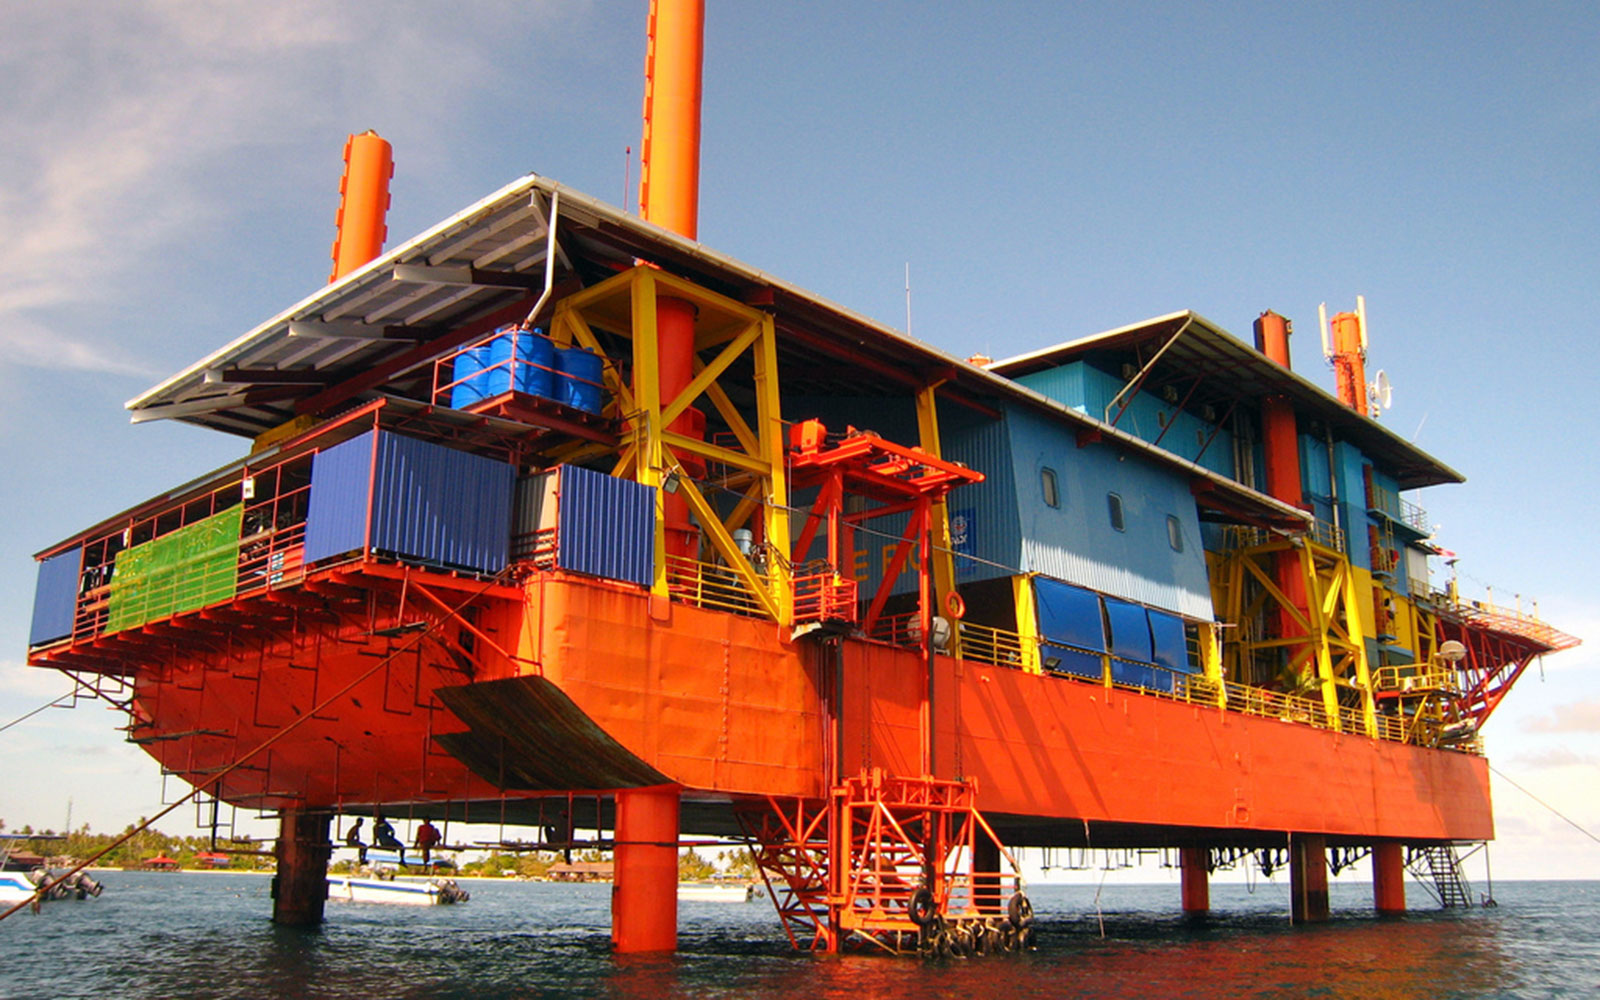 world's most unusual hotels: Seaventures Rig Resort